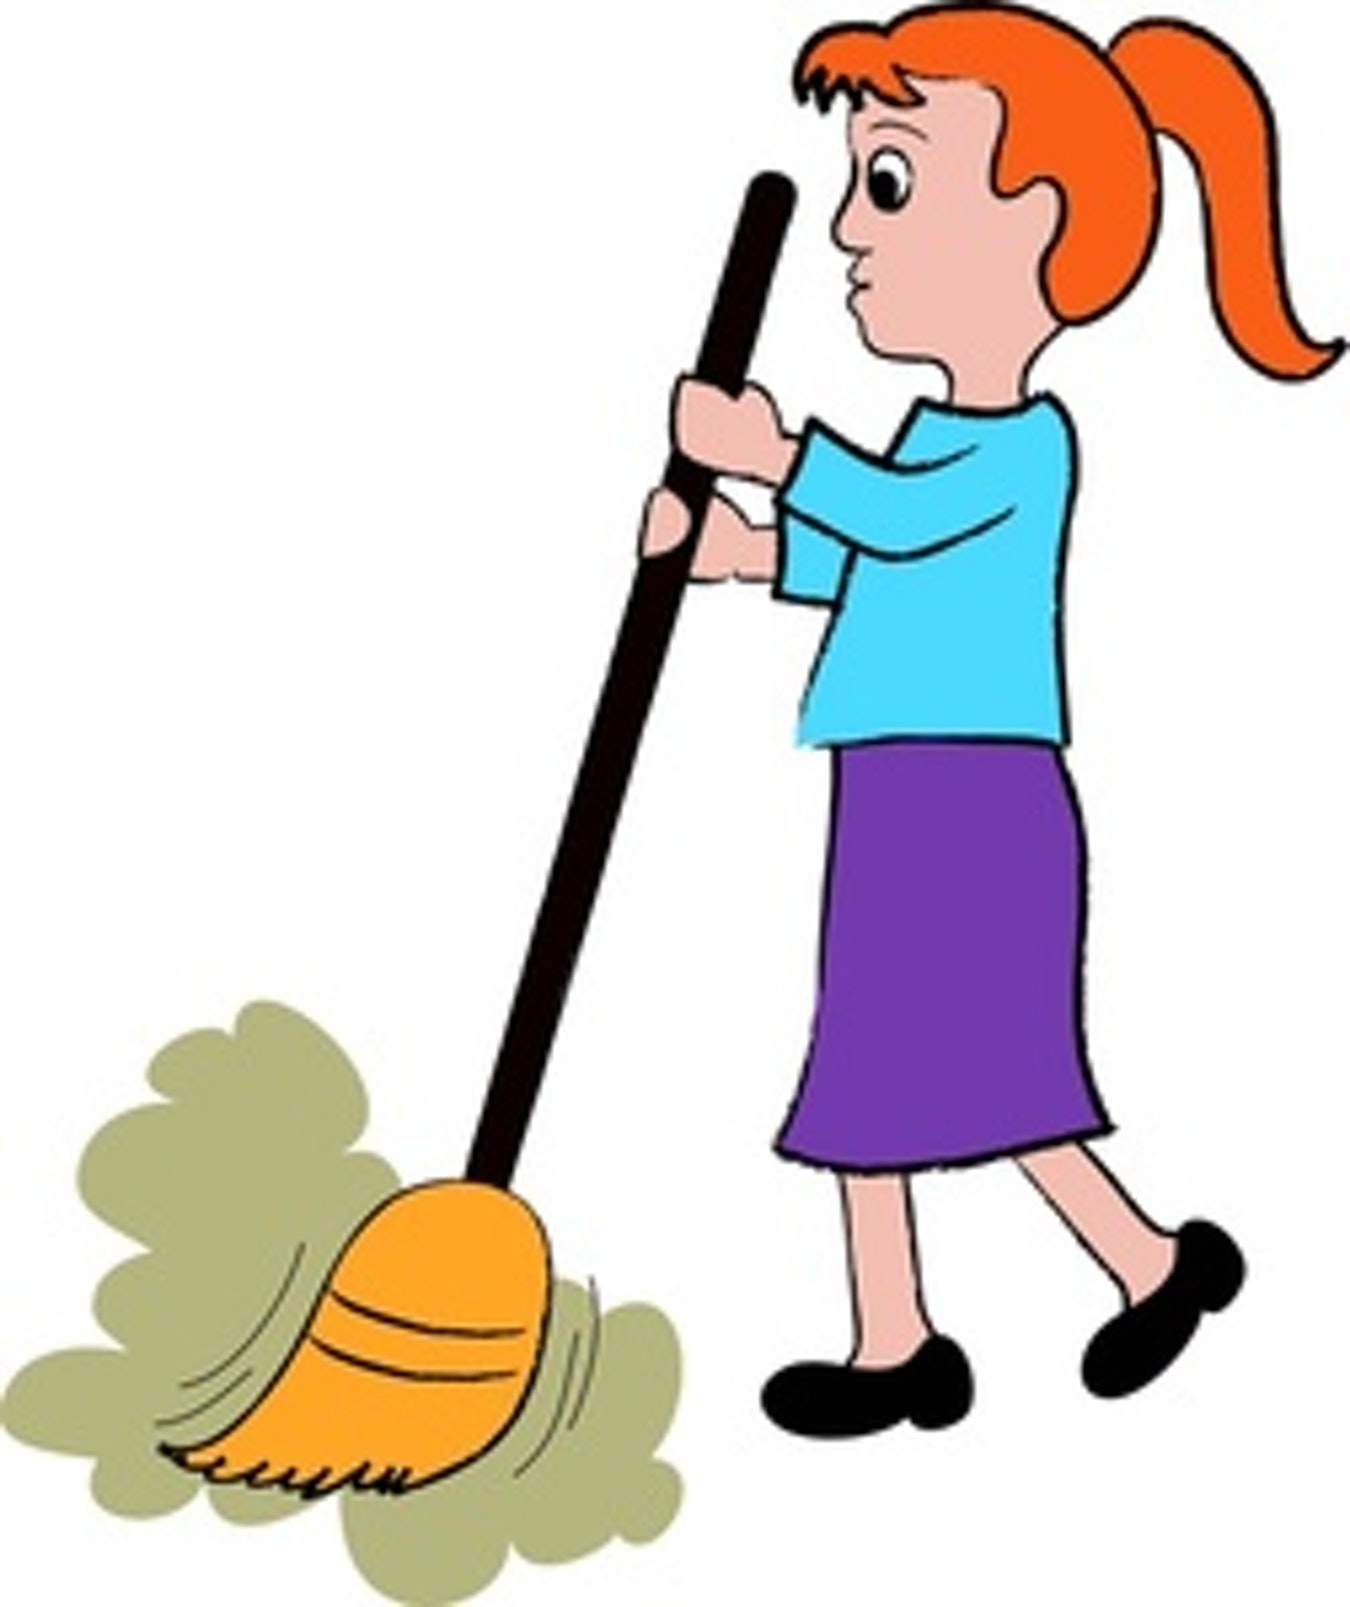 sweeping floor cartoon little boy clipart 16 unorthodox icon sweep 1 9 jantra jyotisha boy clipart 16 unorthodox icon sweep